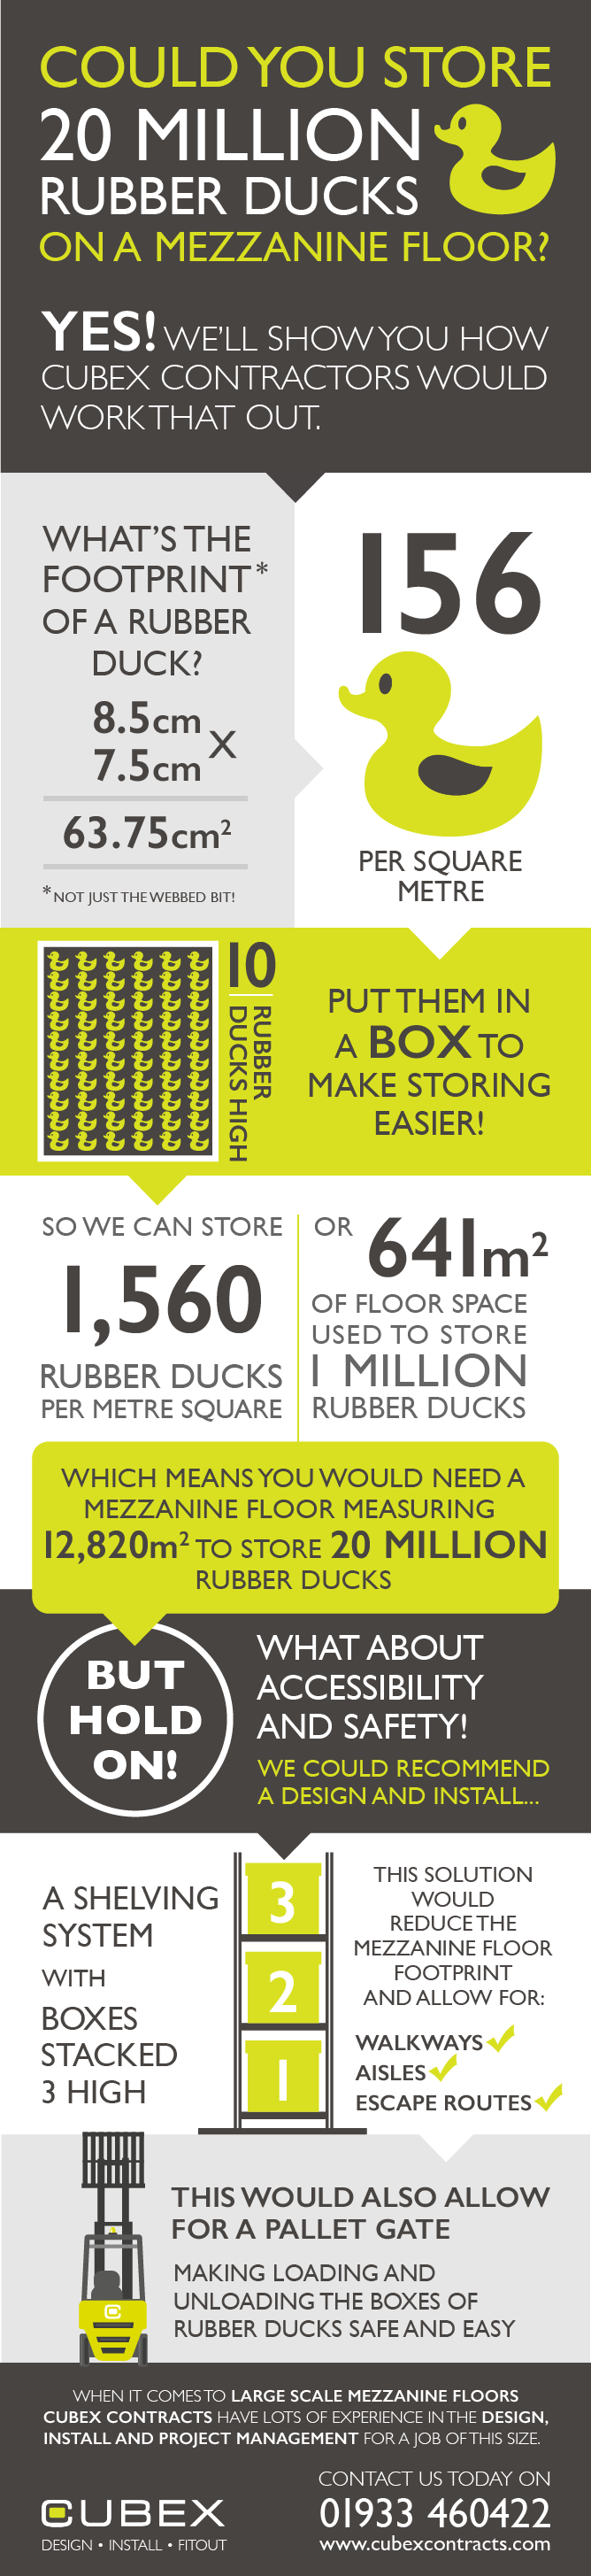 rubber-duck-infographic-01